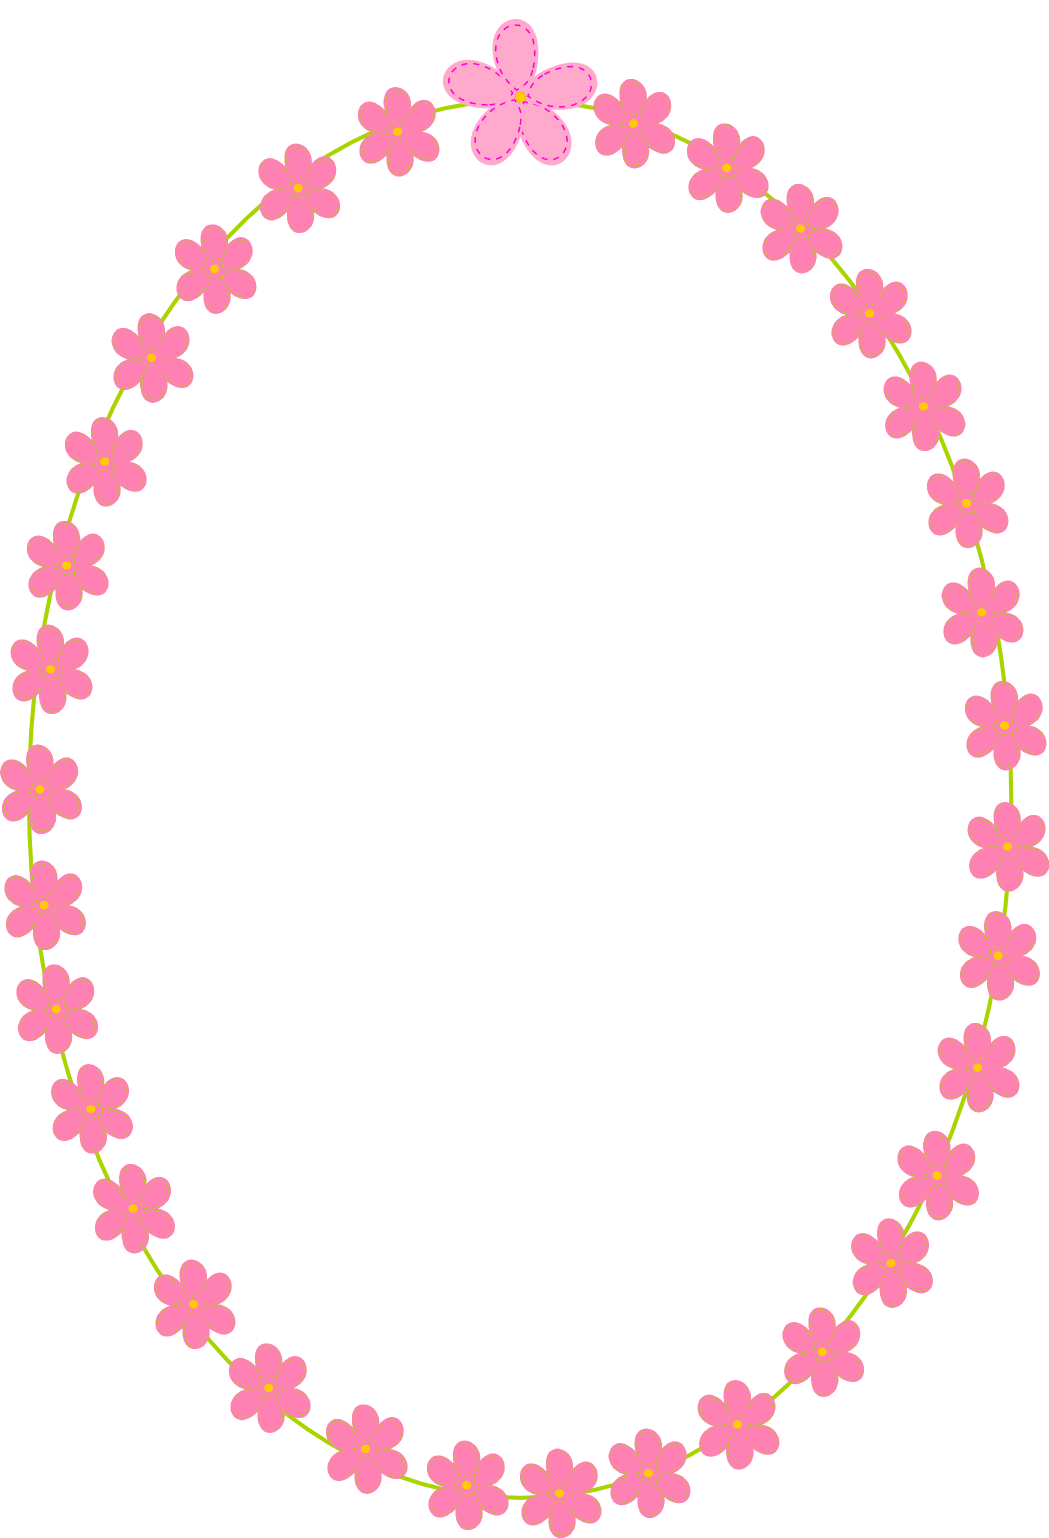 free digital flower border scrapbooking elements - Clipart Rahmen ...